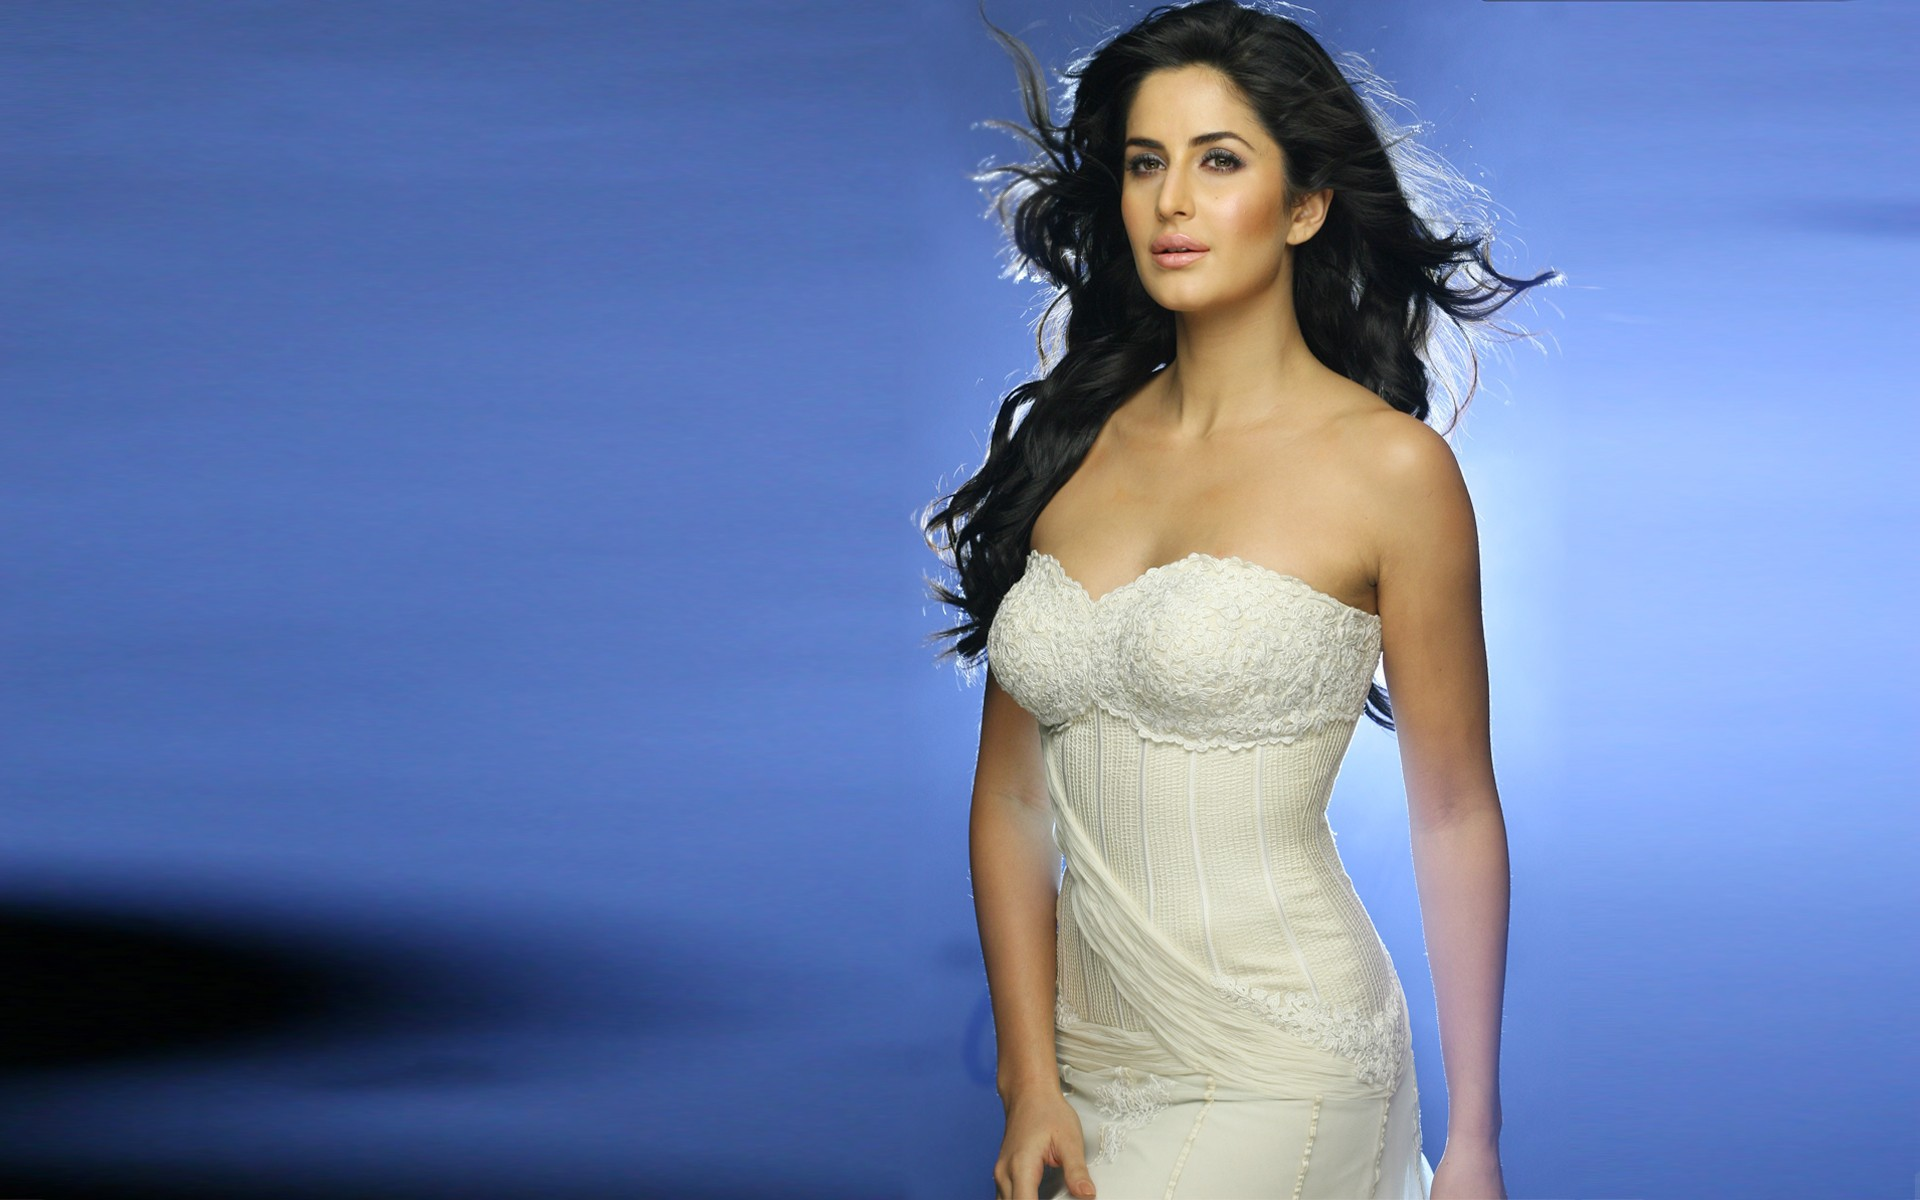 Beauty-Katrina-Kaif-HD-Wallpapers